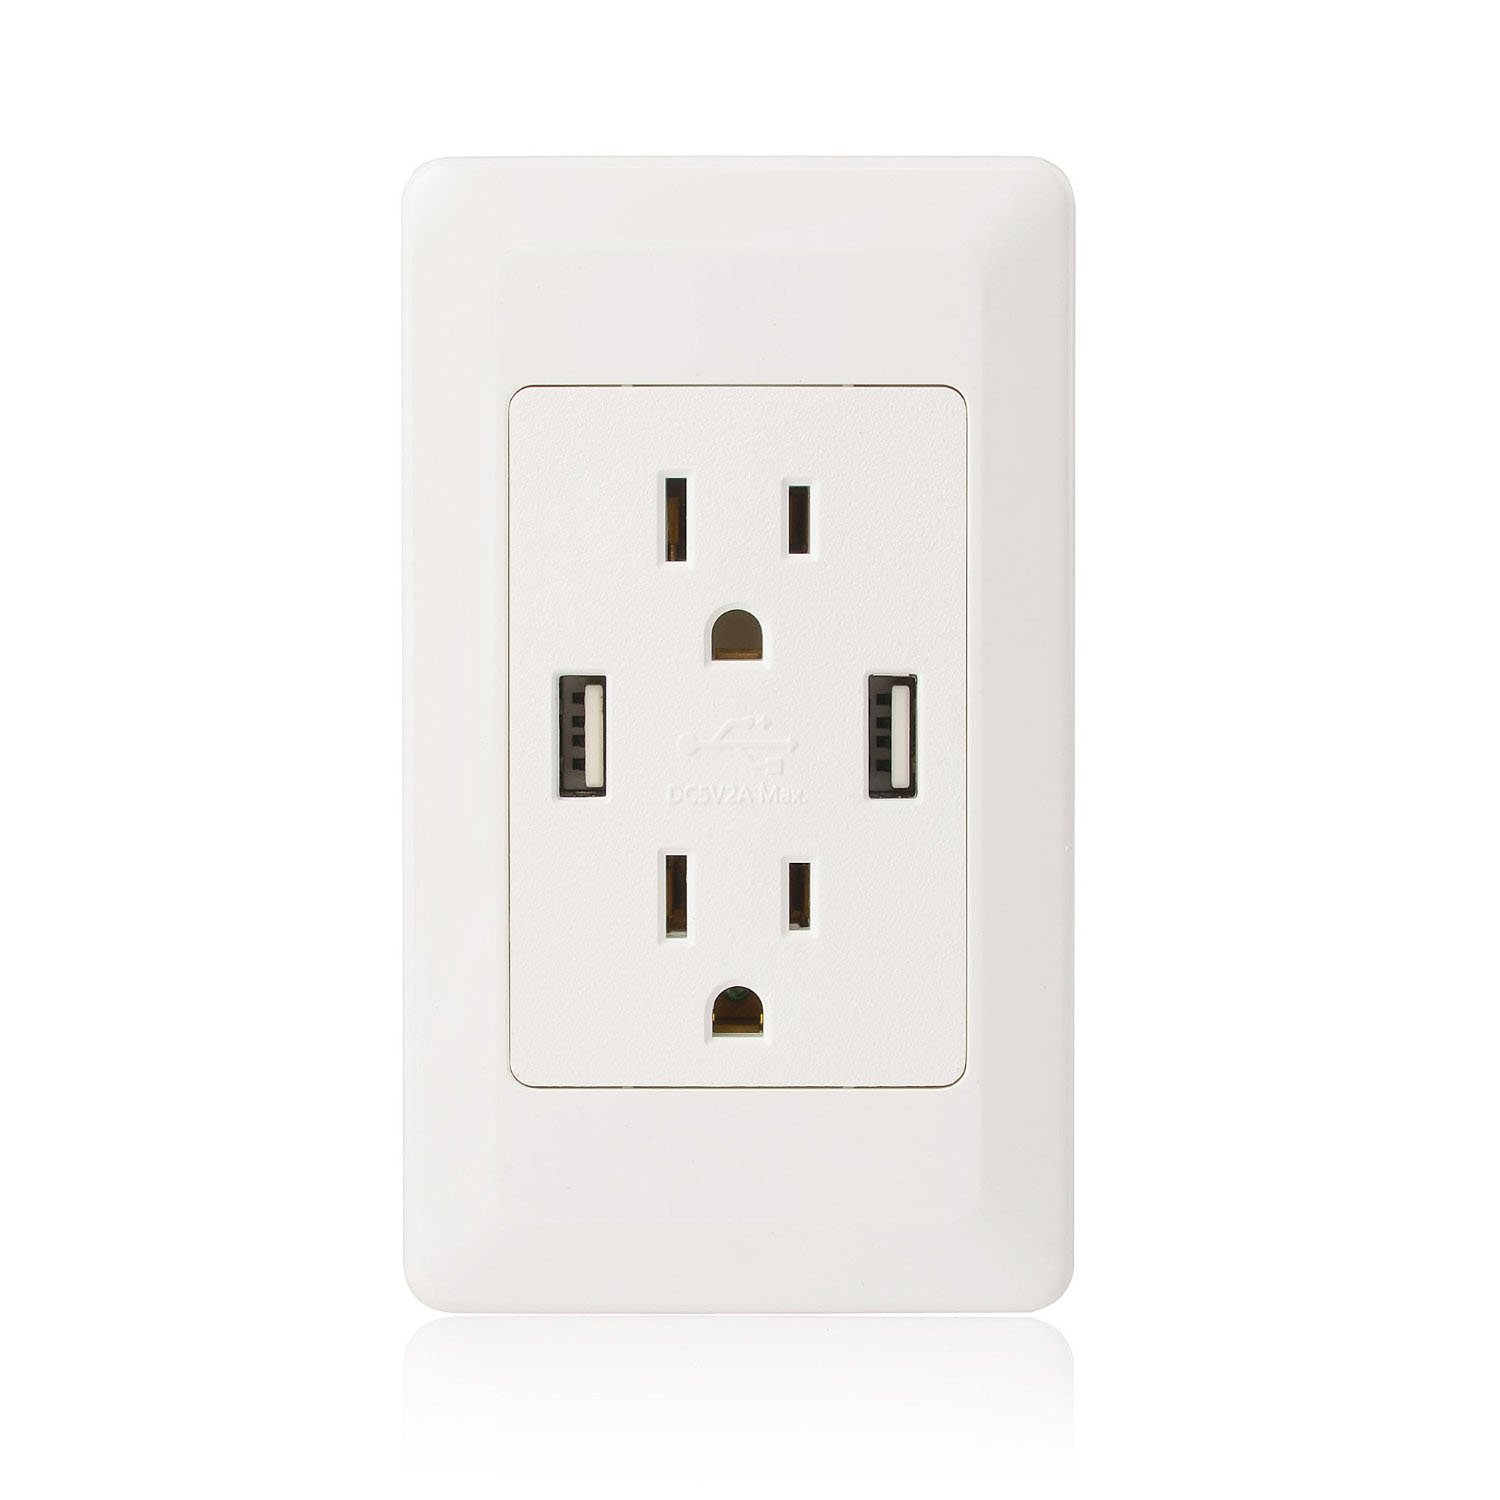 Cheap Usb Socket Outlet Find Deals On Line At Cooper Wiring Devices 15 Amp Decorator Charging Electrical Get Quotations Greencycle 1 Pk Dual Plug Wall Us Power Adapter With